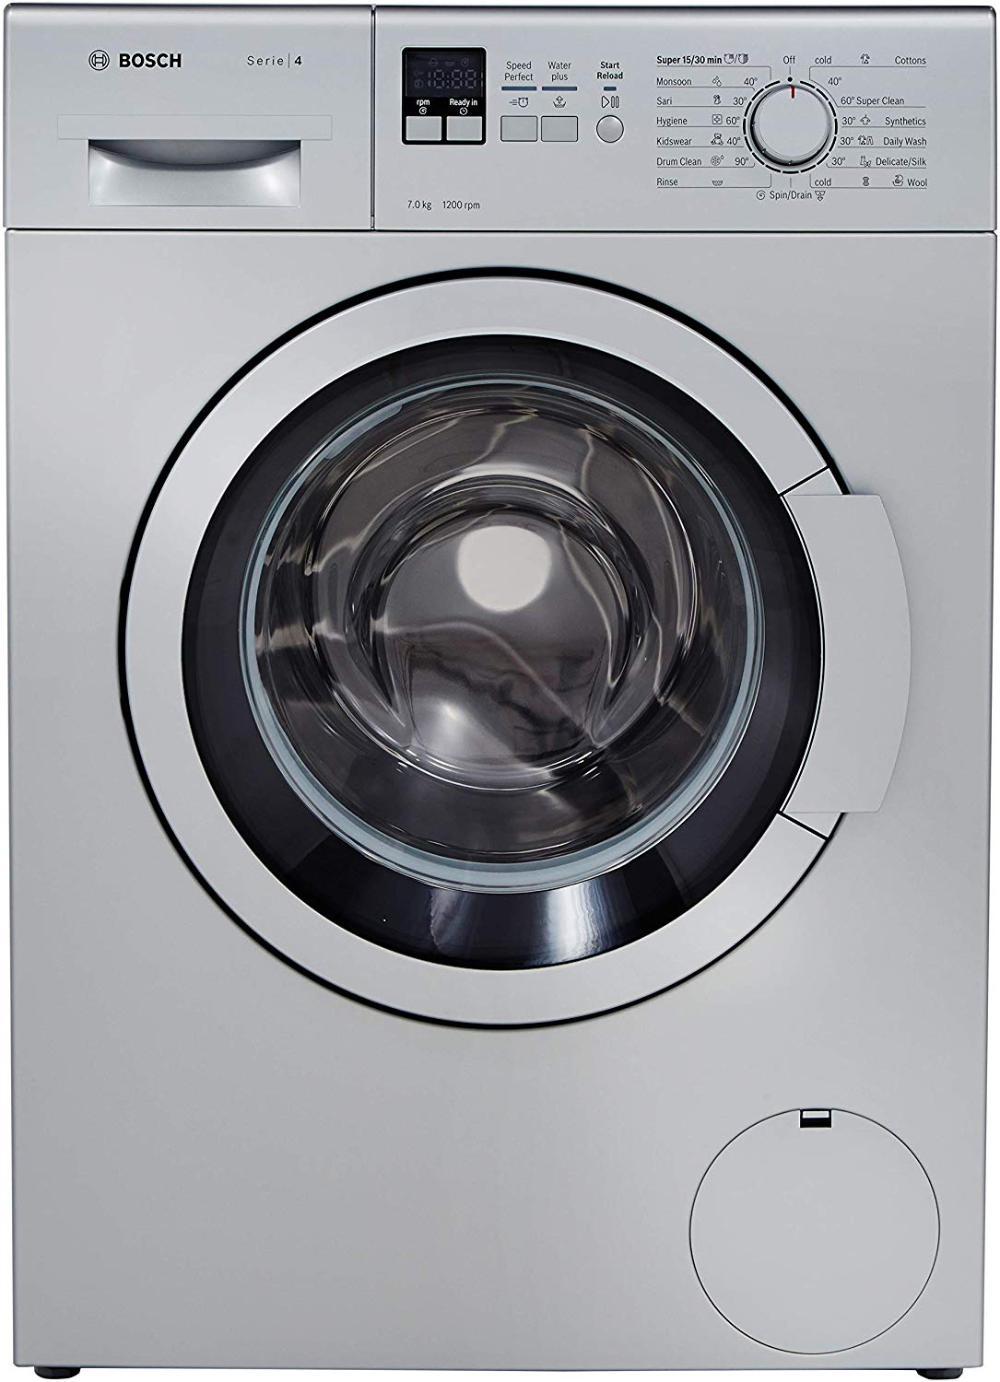 27 Inch Front Load Washer With 4 0 Cu Ft Capacity 11 Washing Programs 1000 Rpm Spin Sd Internal Heater And 56 Db Quiet Operation White